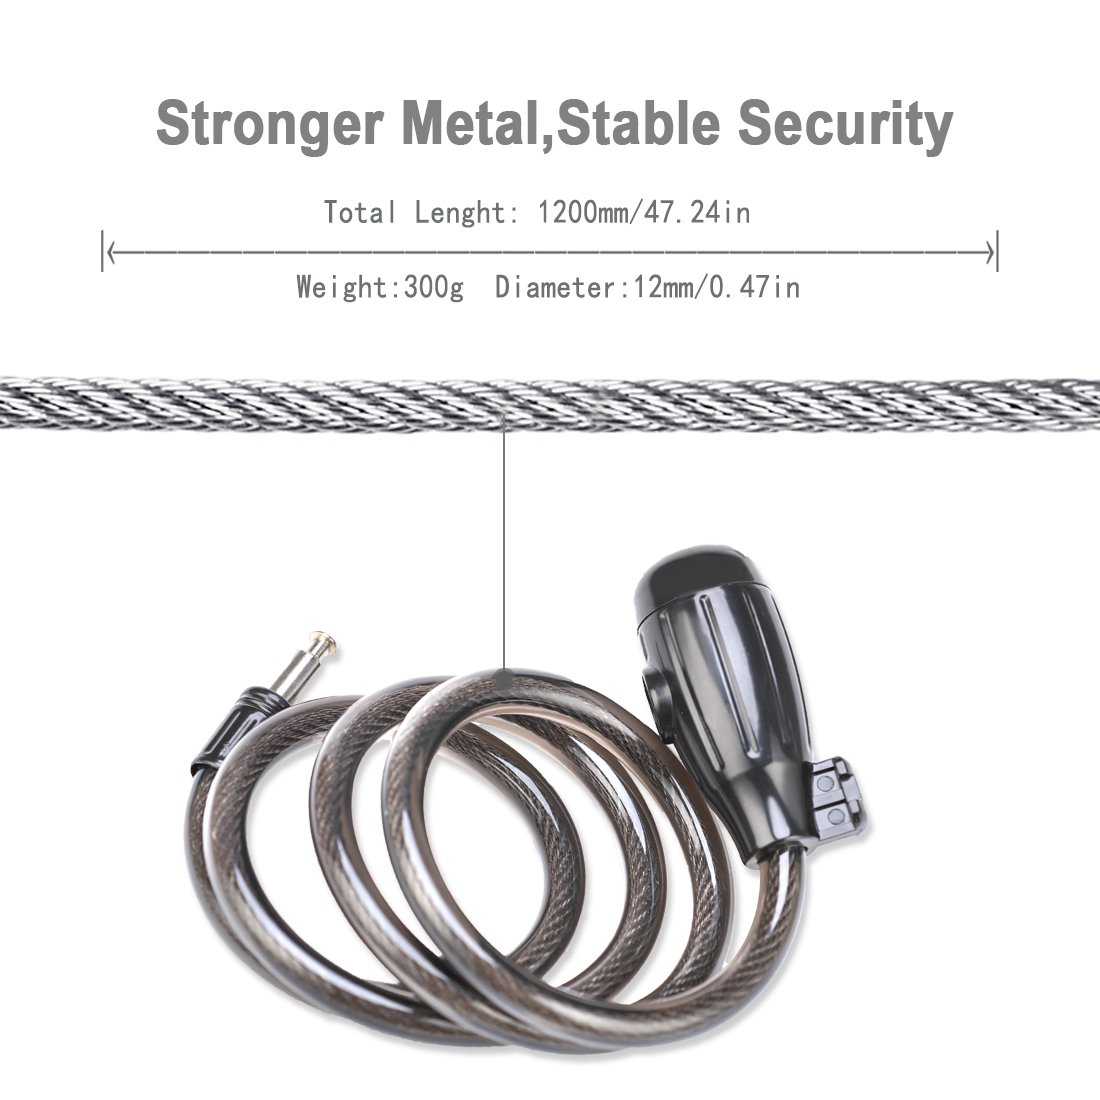 Bike Cable Lock, Shunfa 4ft x 0.47in Heavy Duty Braided Stainless Steel Cable Bicycle Lock with Mounting Bracket and 2 Keys, Security Level 4 by Shunfa (Image #3)